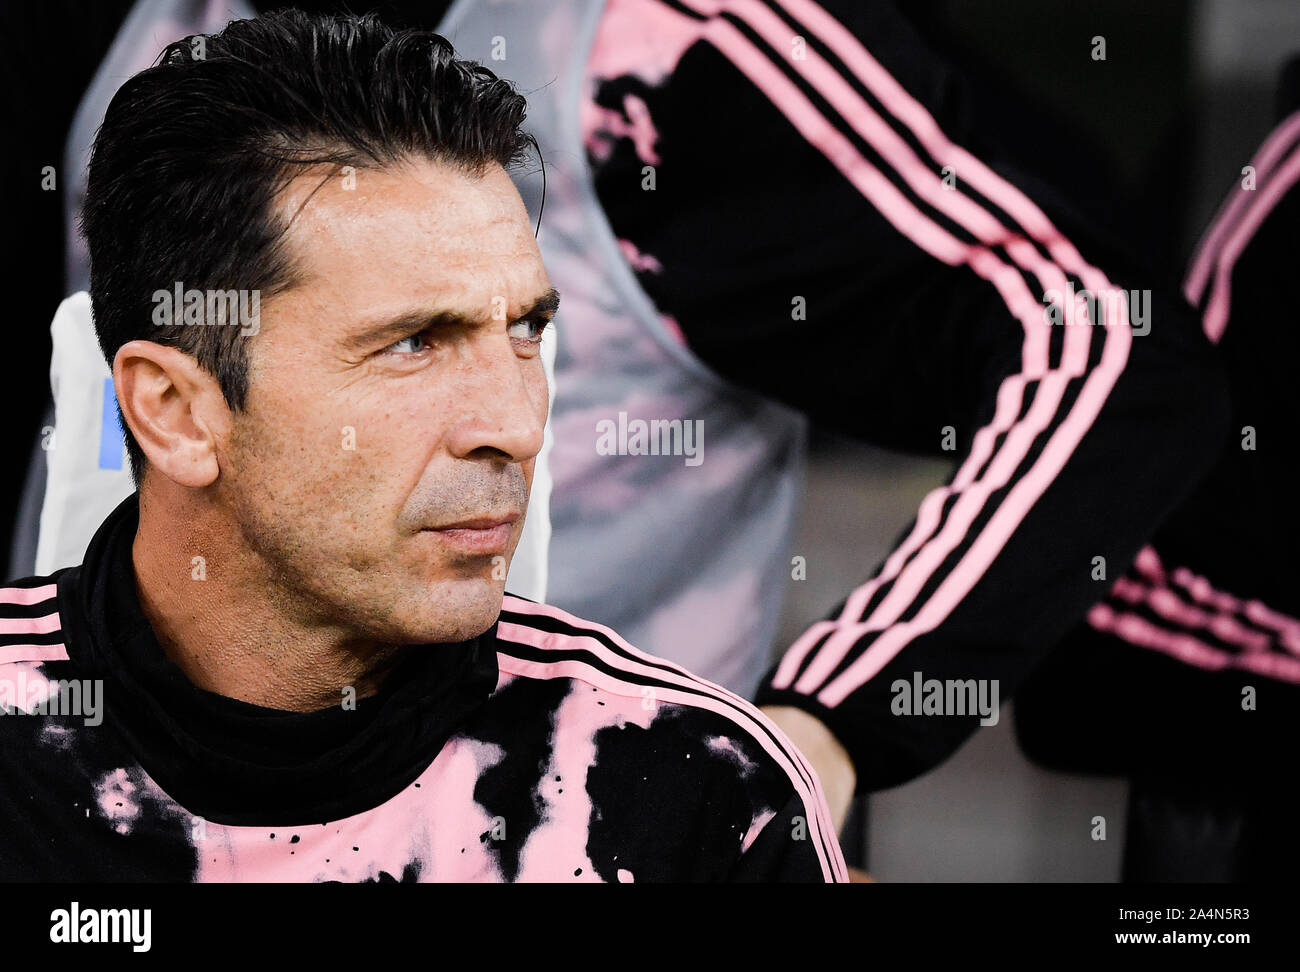 Gianluigi Buffon during the Inter-Juventus soccer match in San Siro Stadium Stock Photo